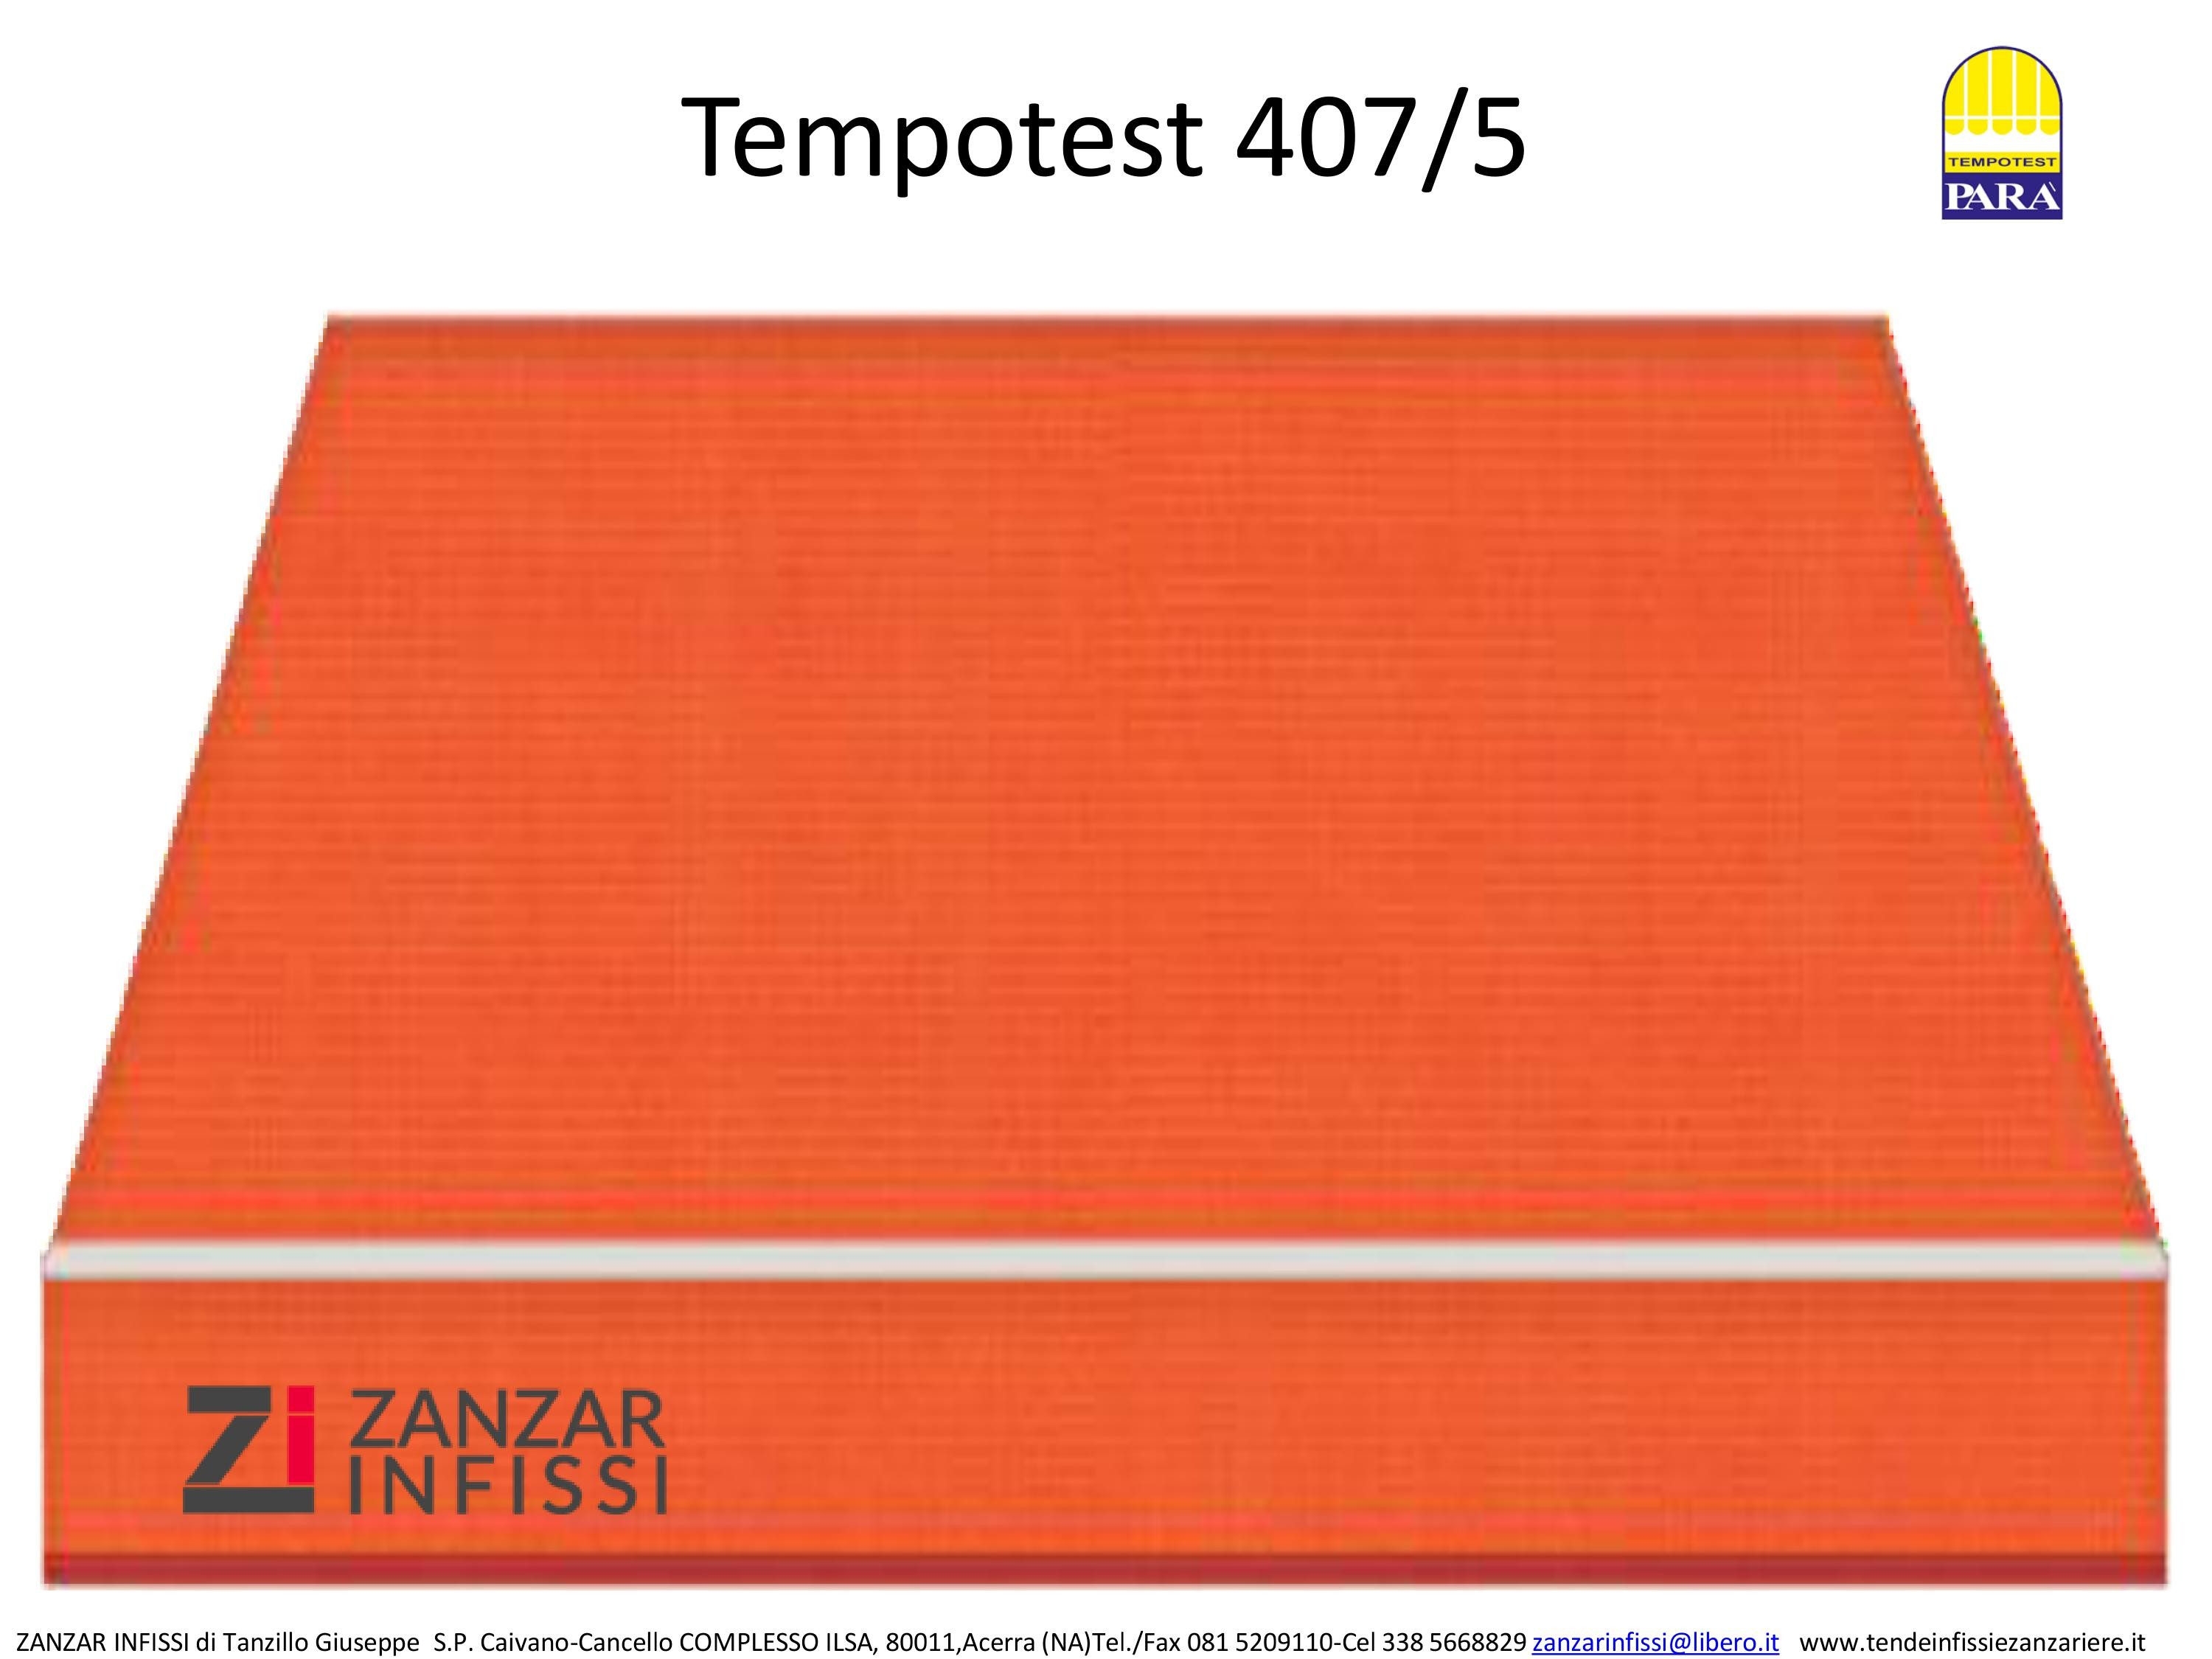 Tempotest 407/5